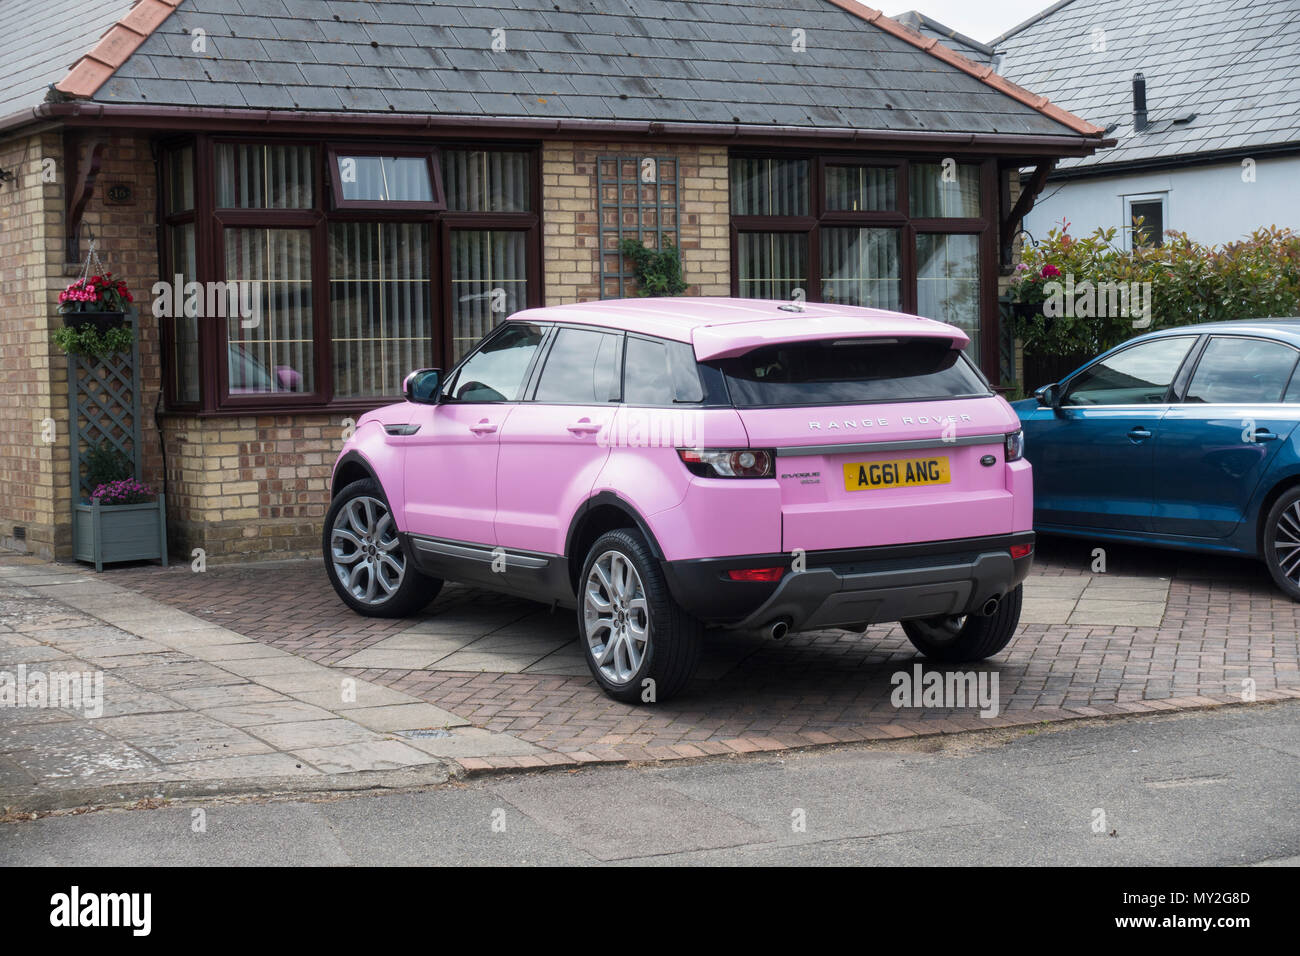 Range Rover Evoque High Resolution Stock Photography And Images Alamy